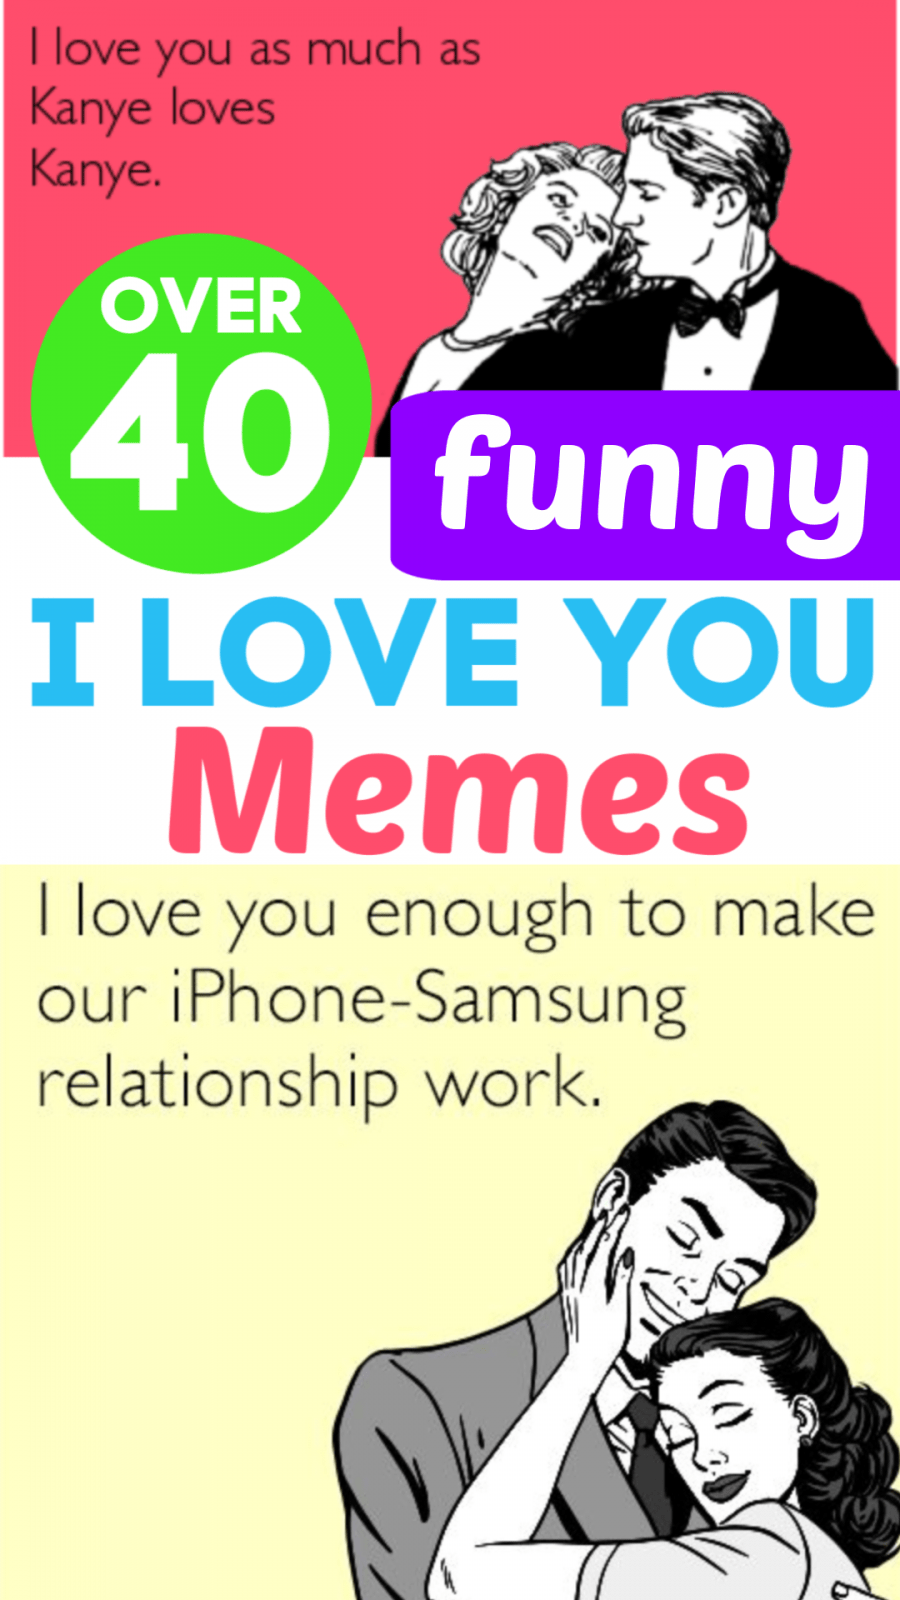 Over 40 Funny I Love You Memes